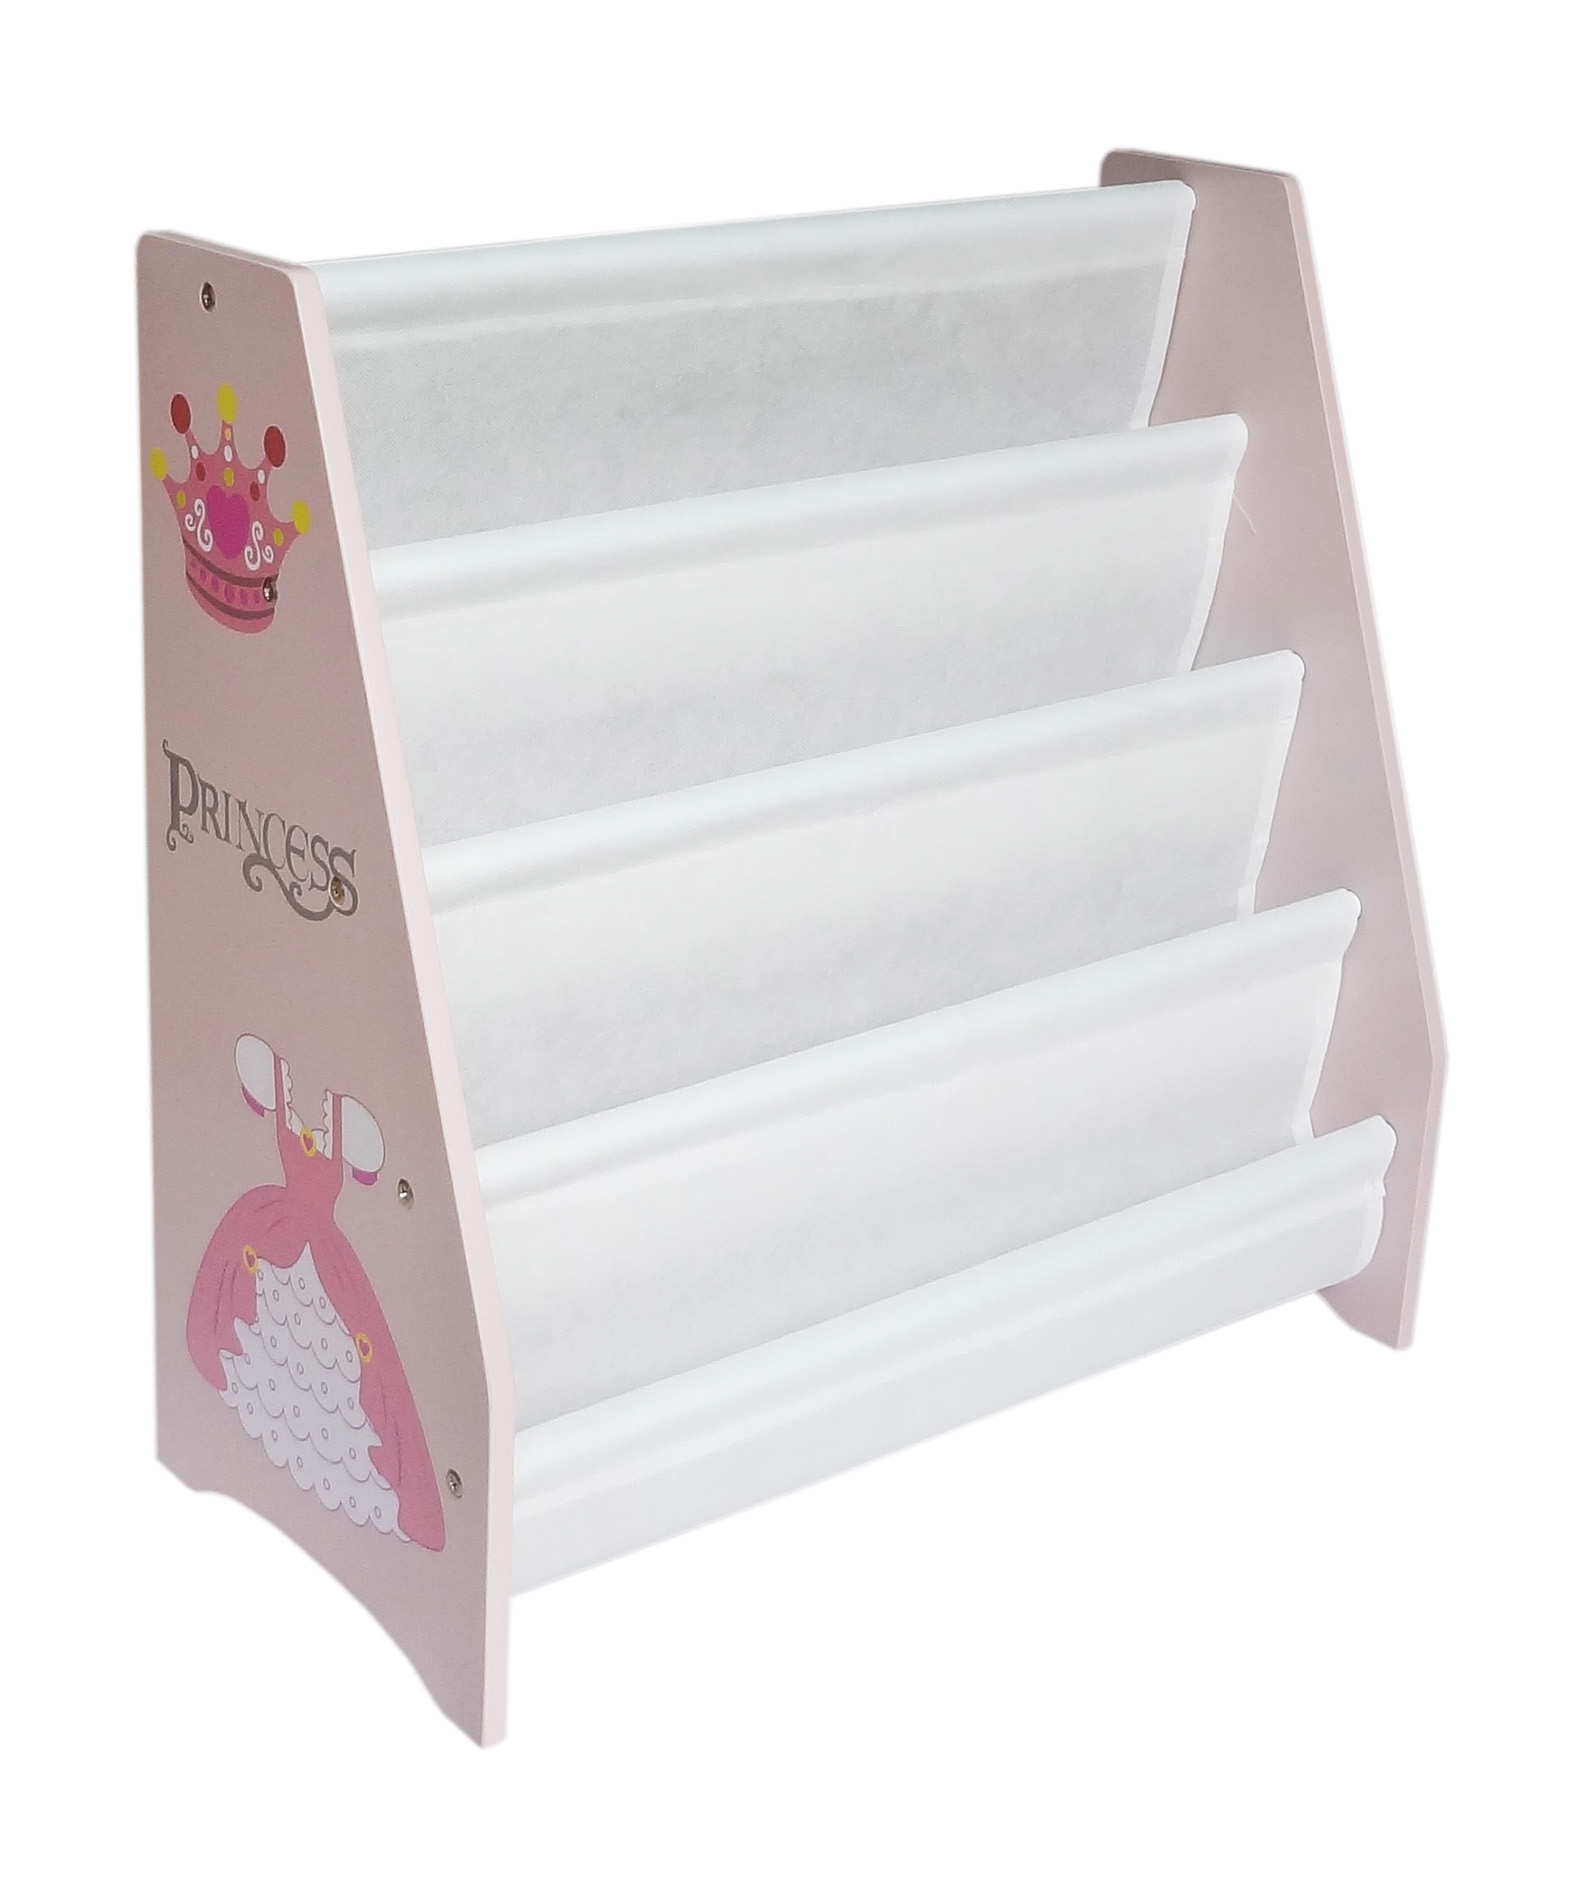 style kiddy bookshelf themed princess sling product products theme kiddi furniture home